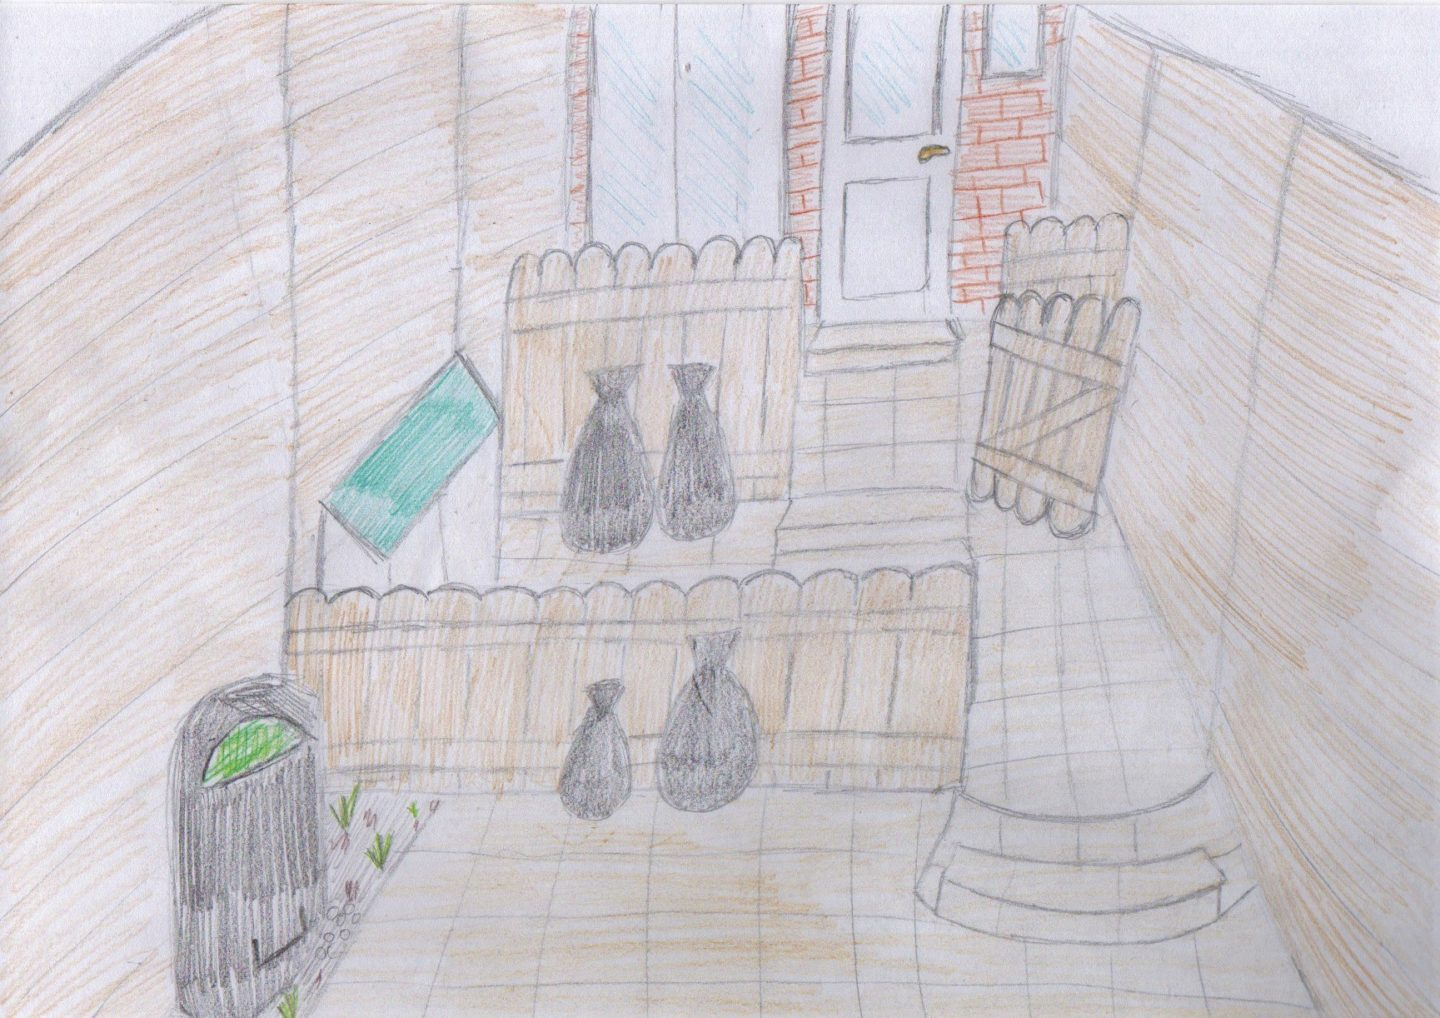 Sketch of back garden